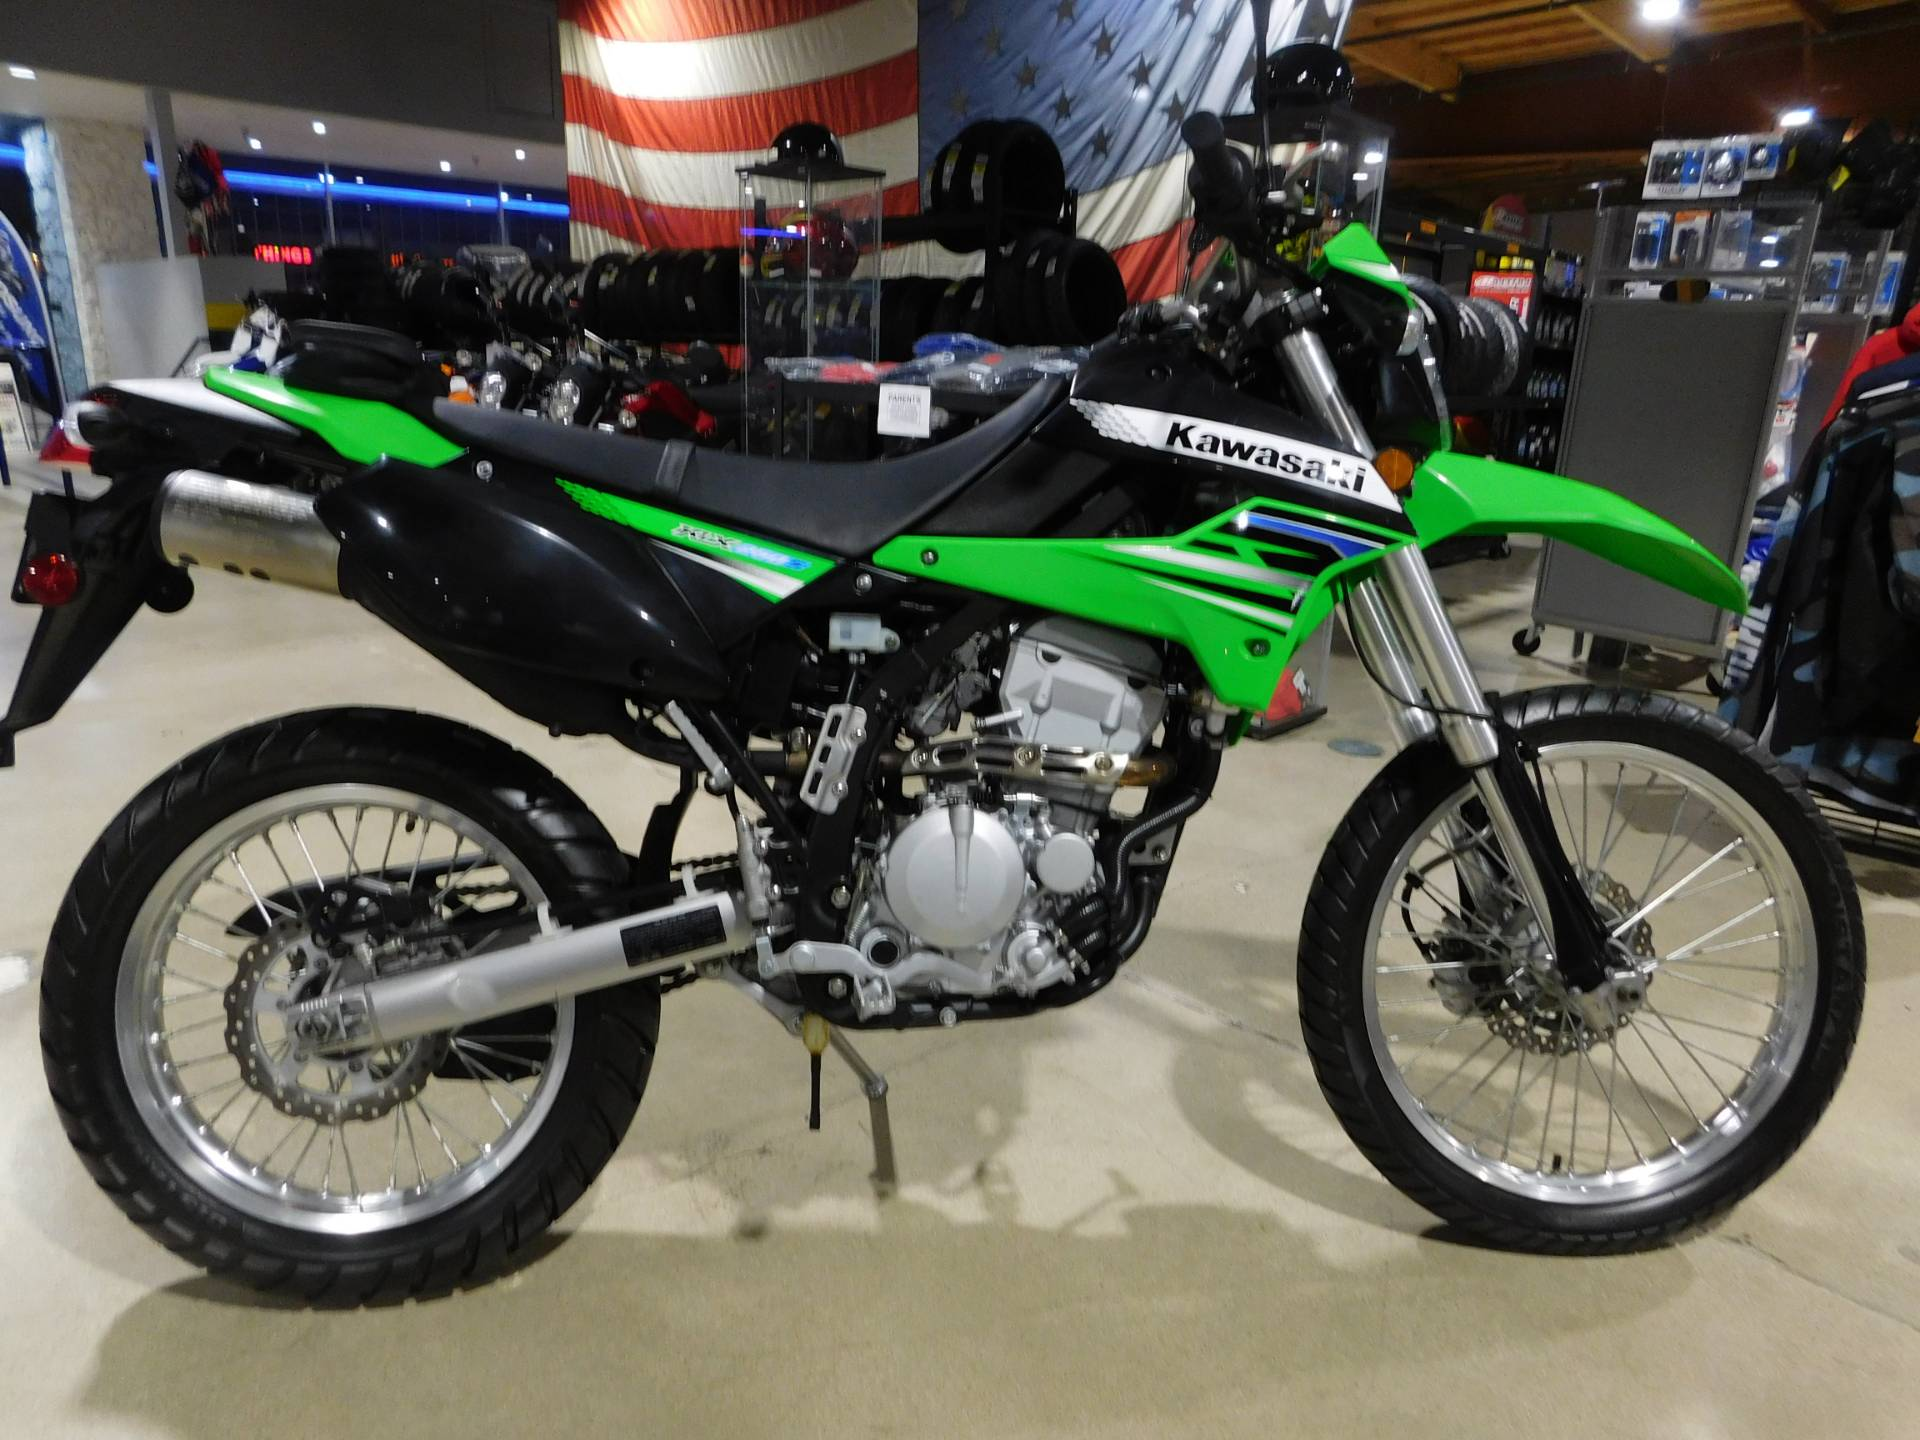 used 2012 kawasaki klx 250s motorcycles in chula vista ca stock number a12643. Black Bedroom Furniture Sets. Home Design Ideas